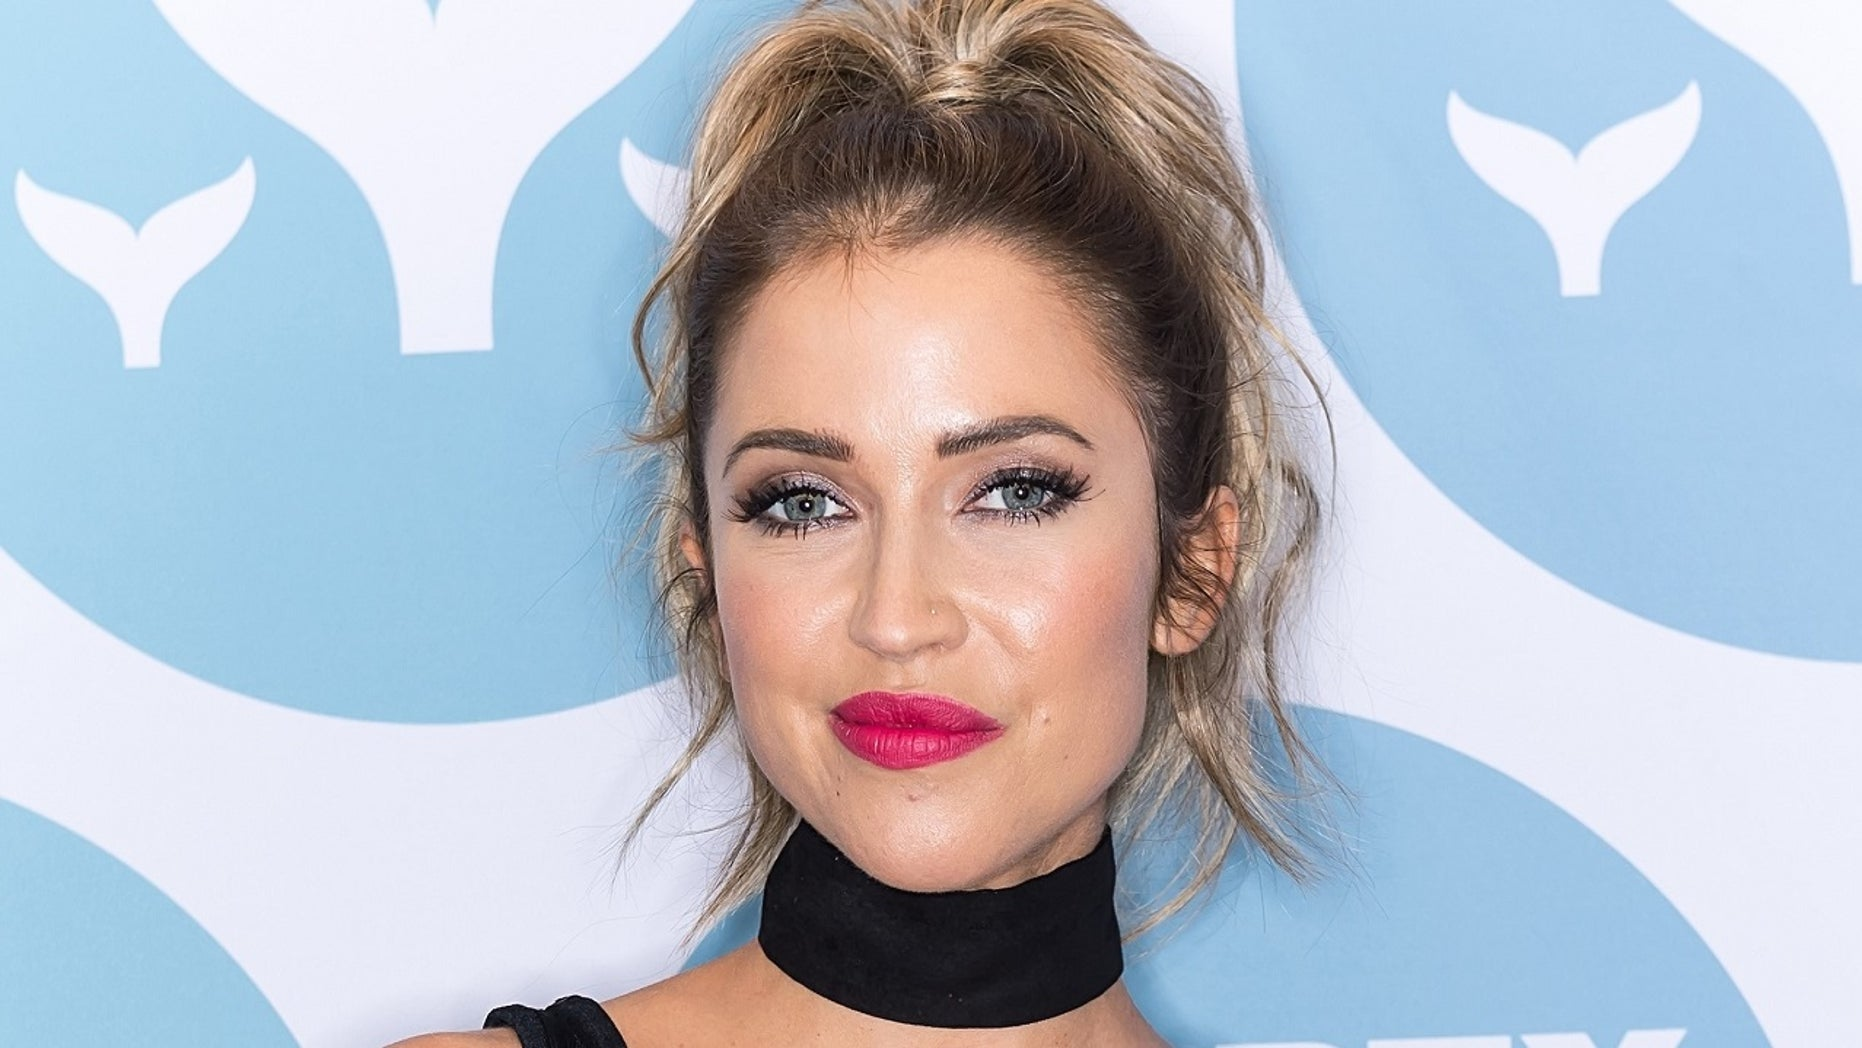 Kaitlyn Bristowe revealed she suffered a wardrobe malfunction at the Emmys.